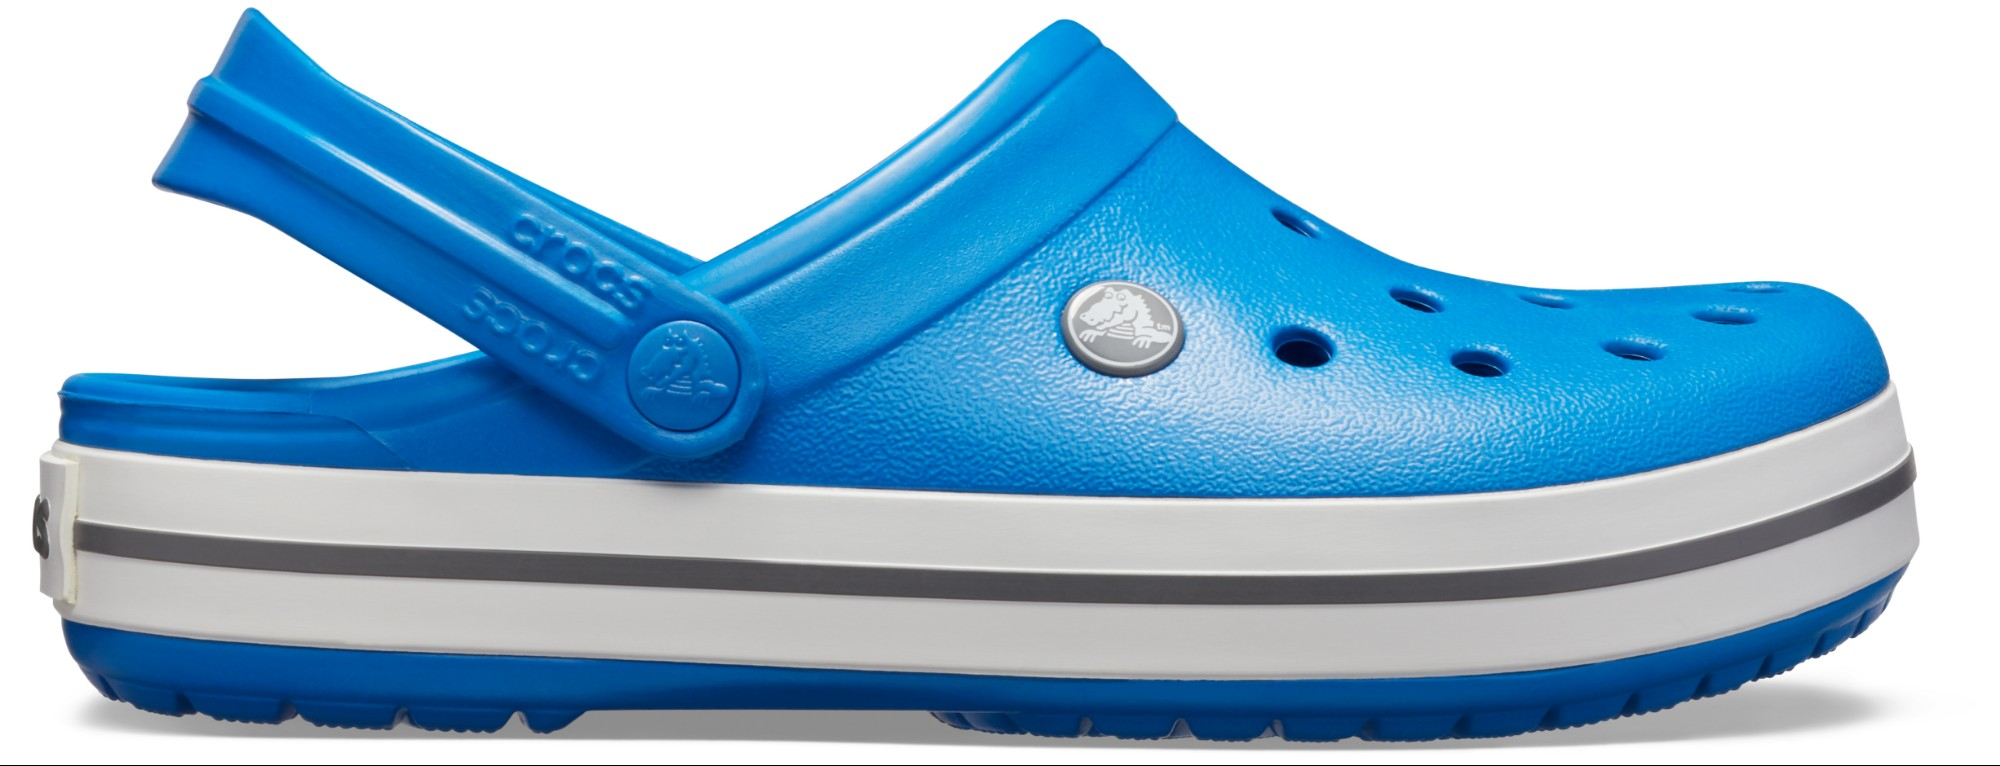 Crocs™ Crocband™ Bright Cobalt/Charcoal 41